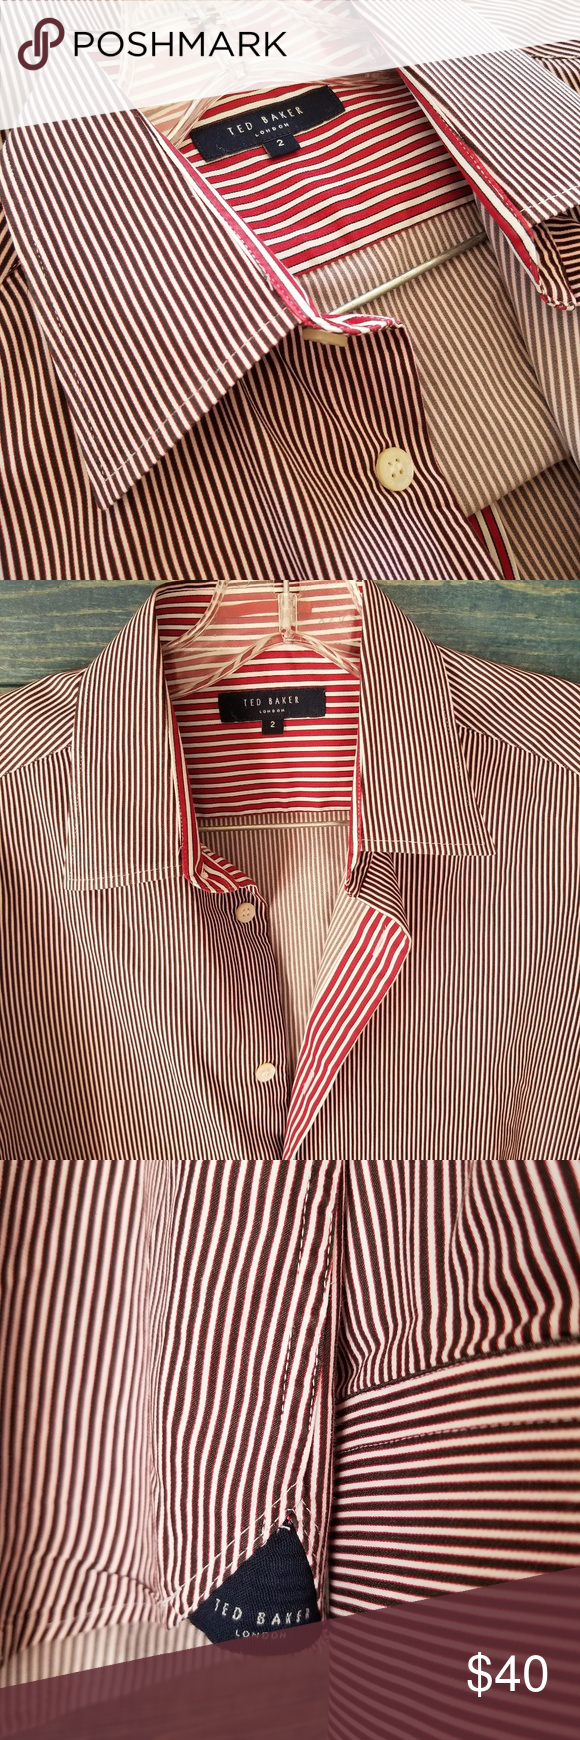 Ted Baker Striped Dress Shirt Striped Dress Ted Baker Shirts Red And White Stripes [ 1740 x 580 Pixel ]